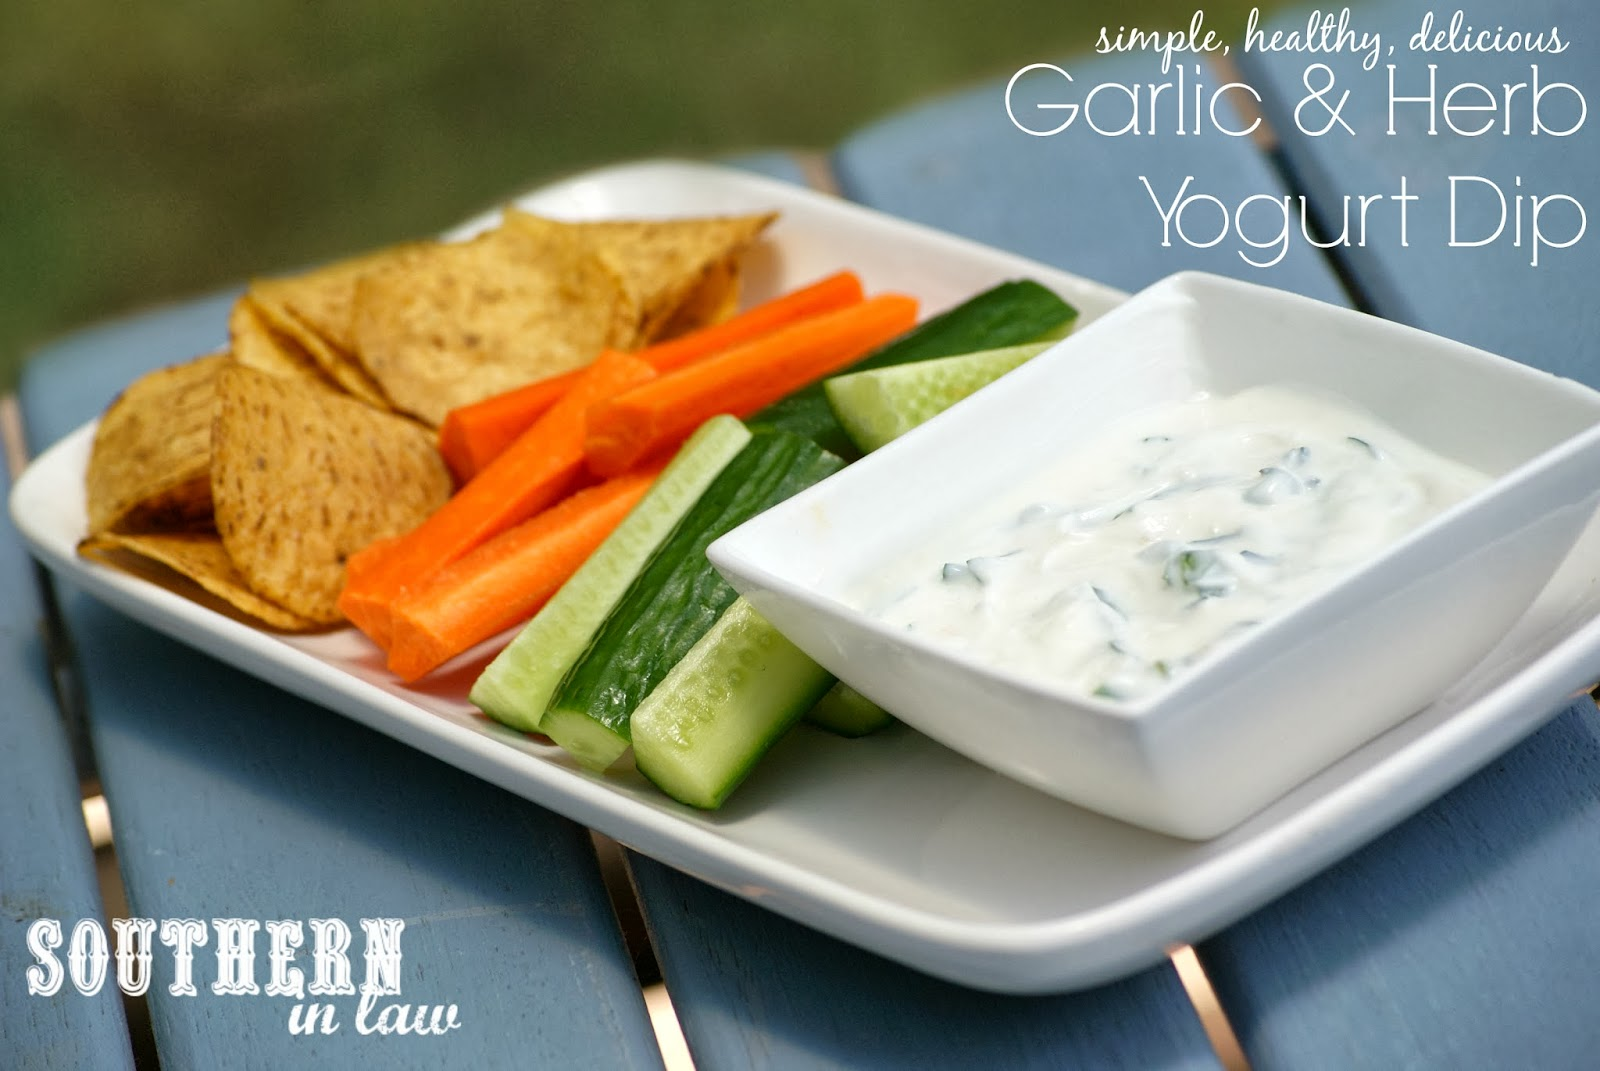 Healthy Garlic and Herb Yogurt Dip with Vegetable Crudites and Corn Chips - Healthy, Gluten Free, Low Fat, Clean Eating Friendly, Sugar Free